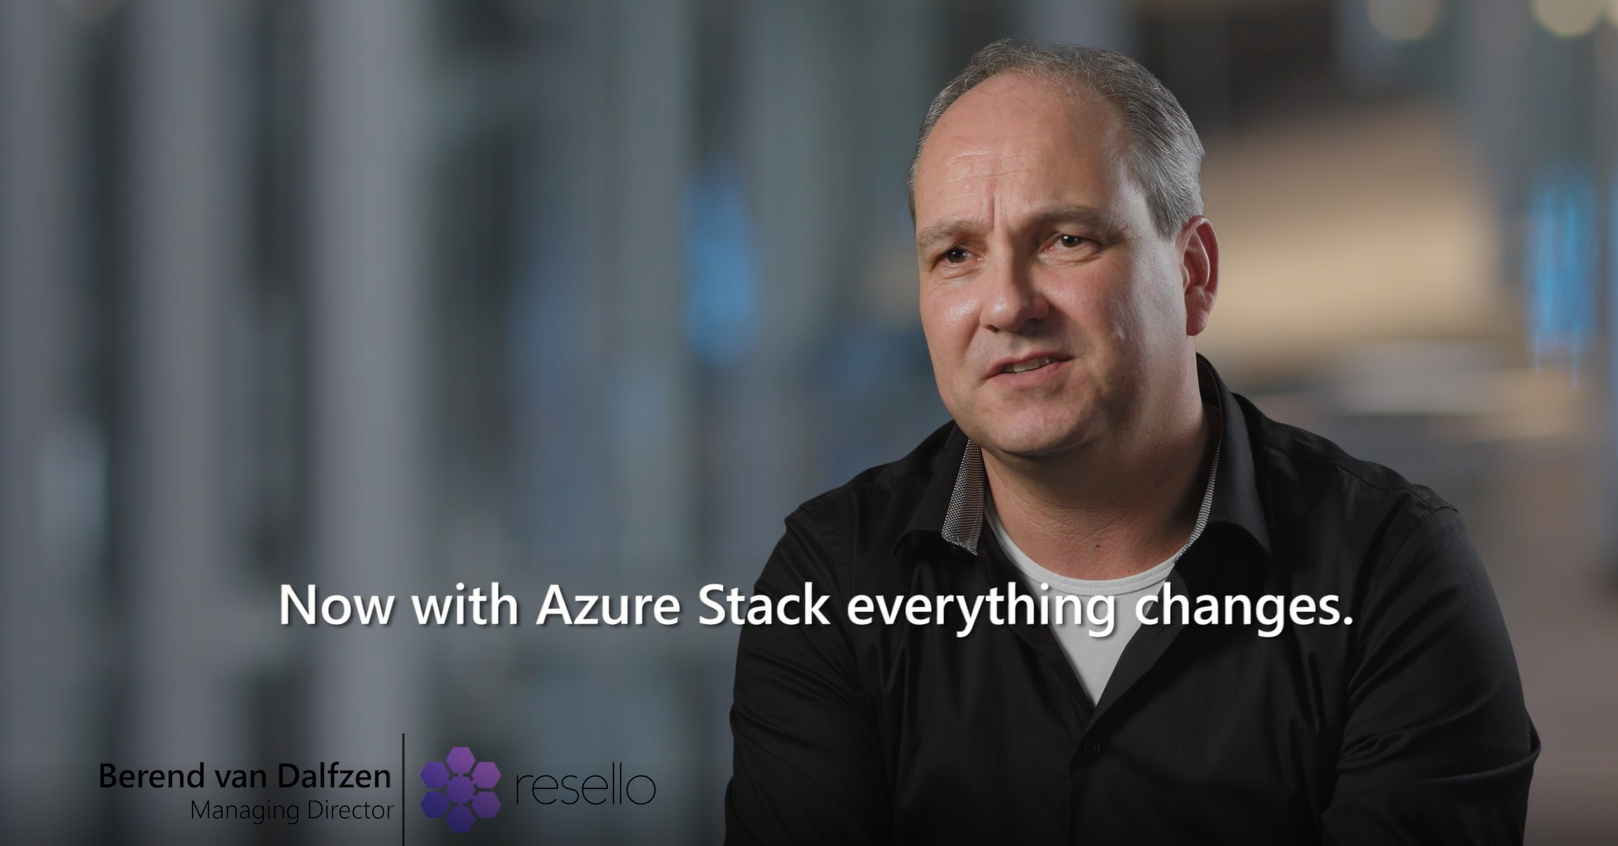 Growing your Azure business with Azure Stack